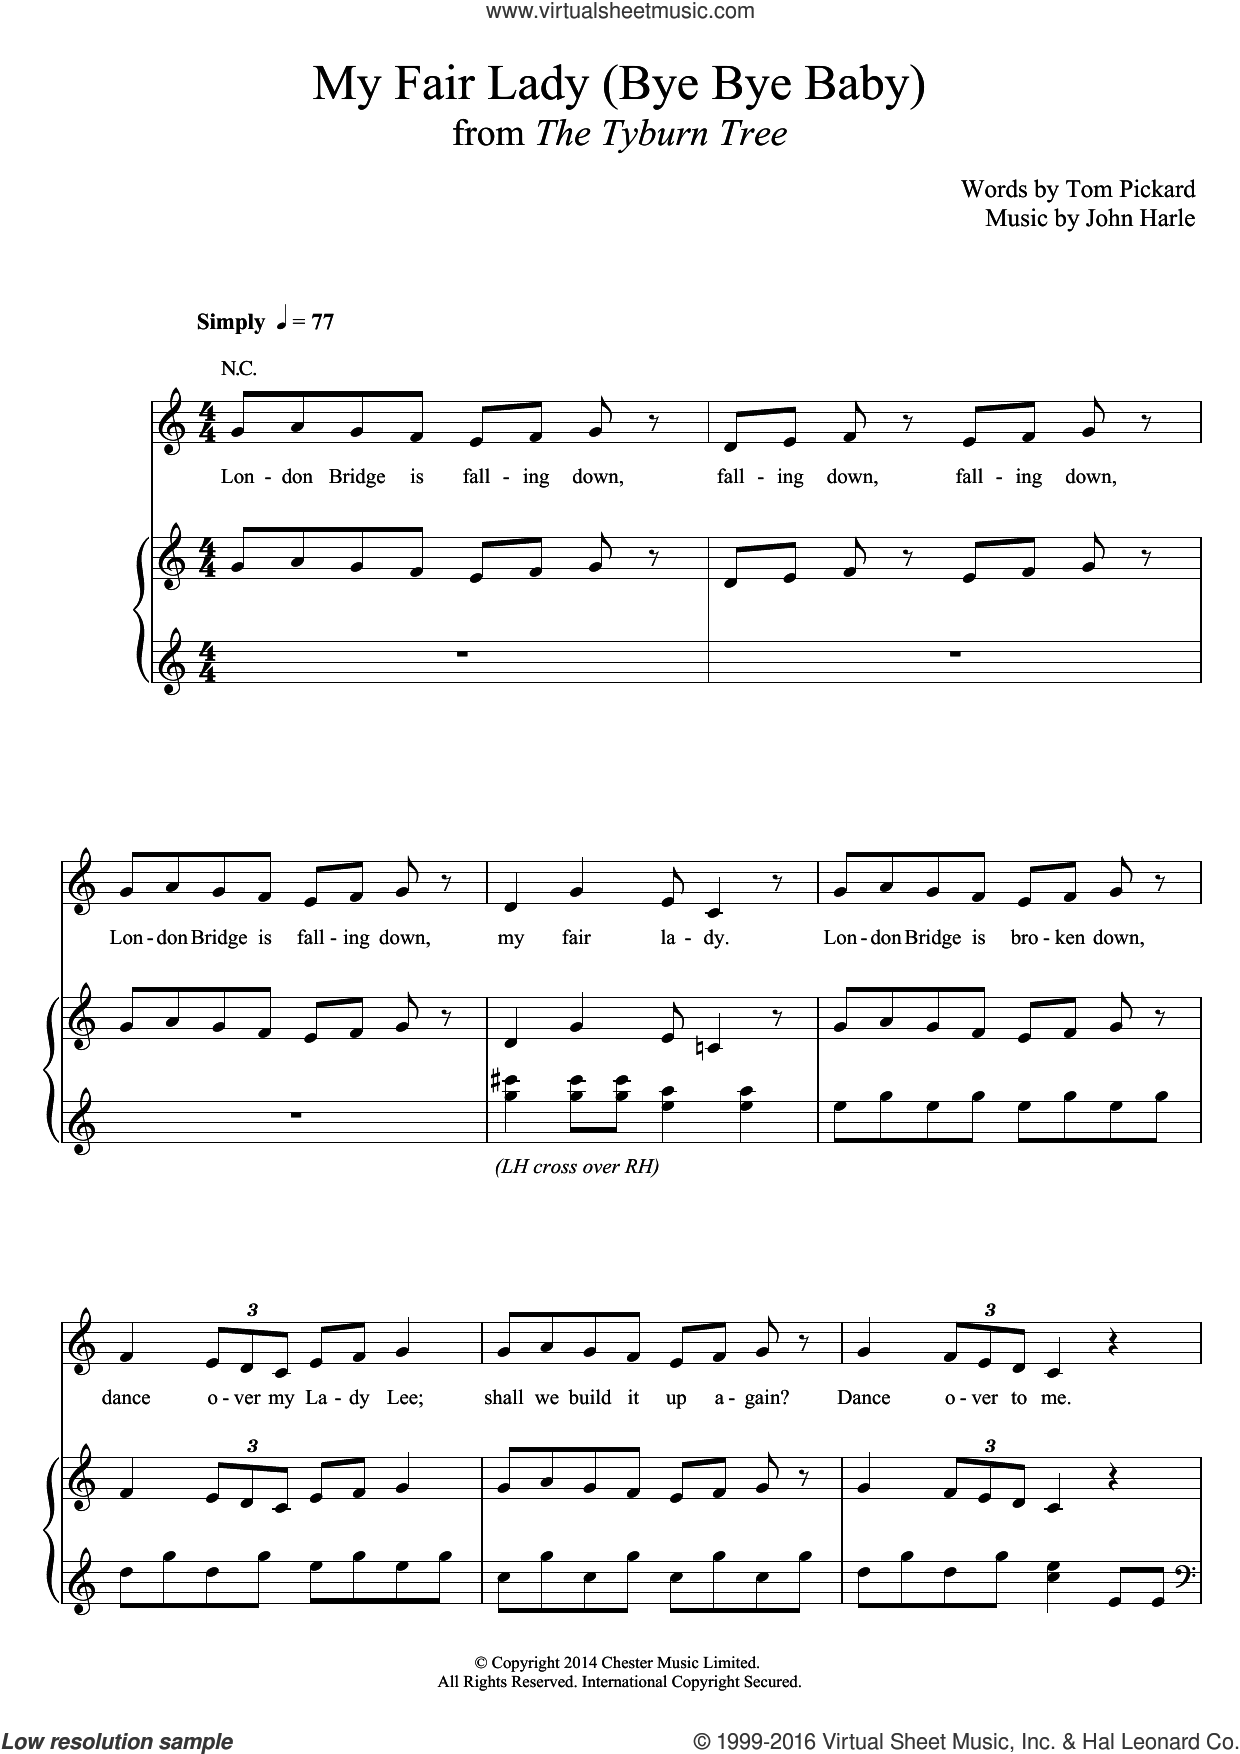 My Fair Lady (Bye Bye Baby) sheet music for voice, piano or guitar by Tom Pickard